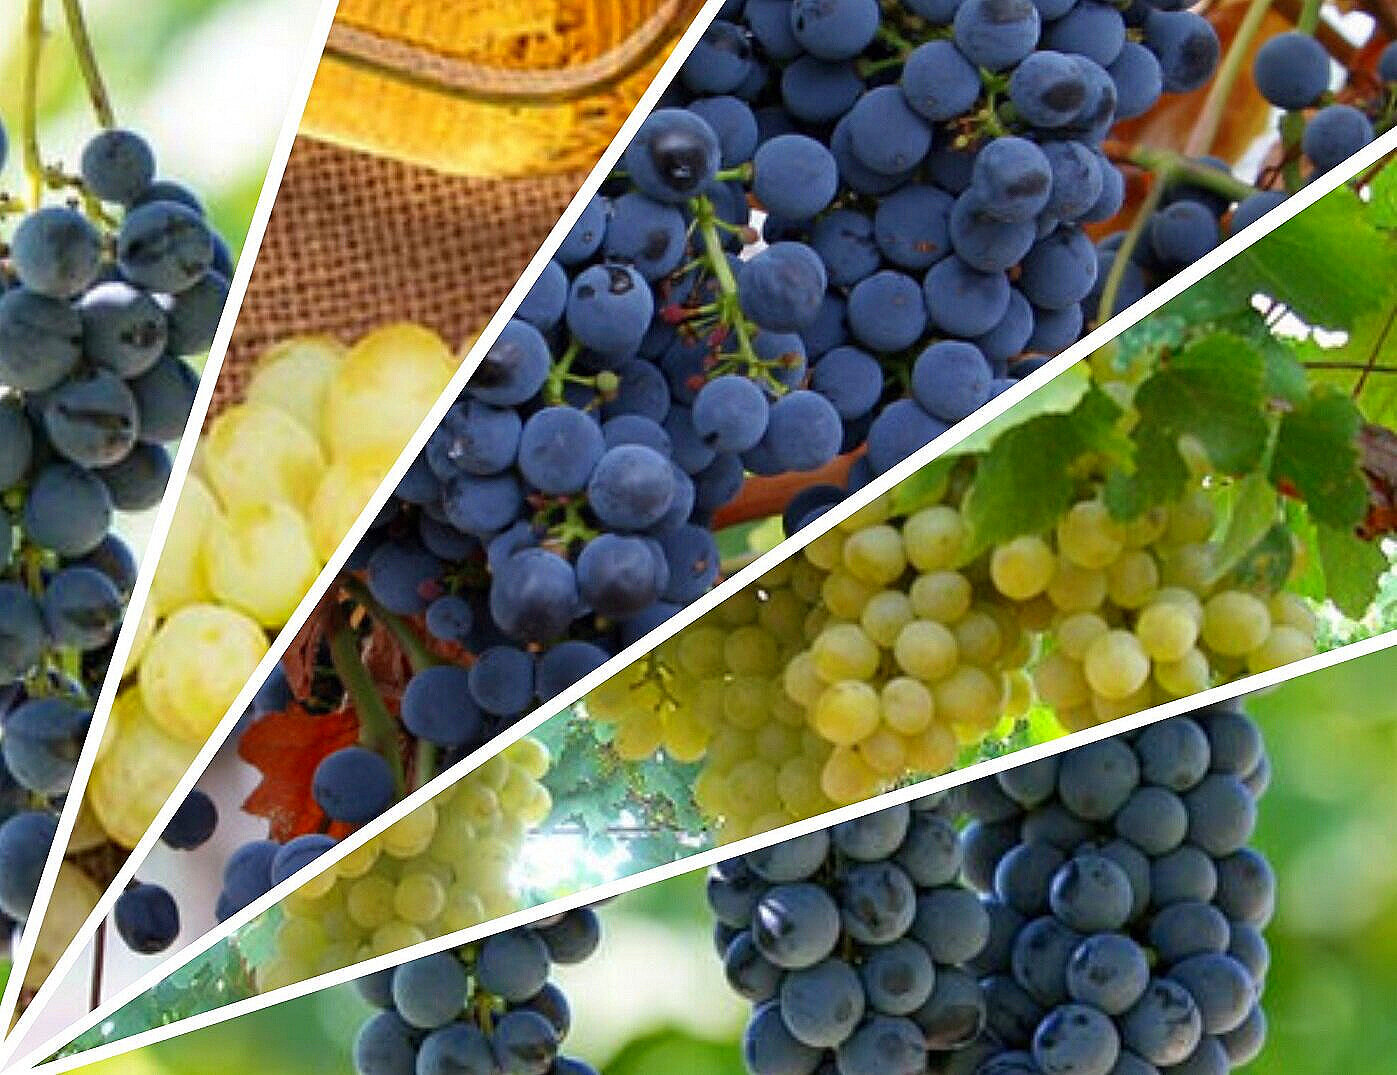 Carménère and other grapes saved from extinction to produce world-class wines